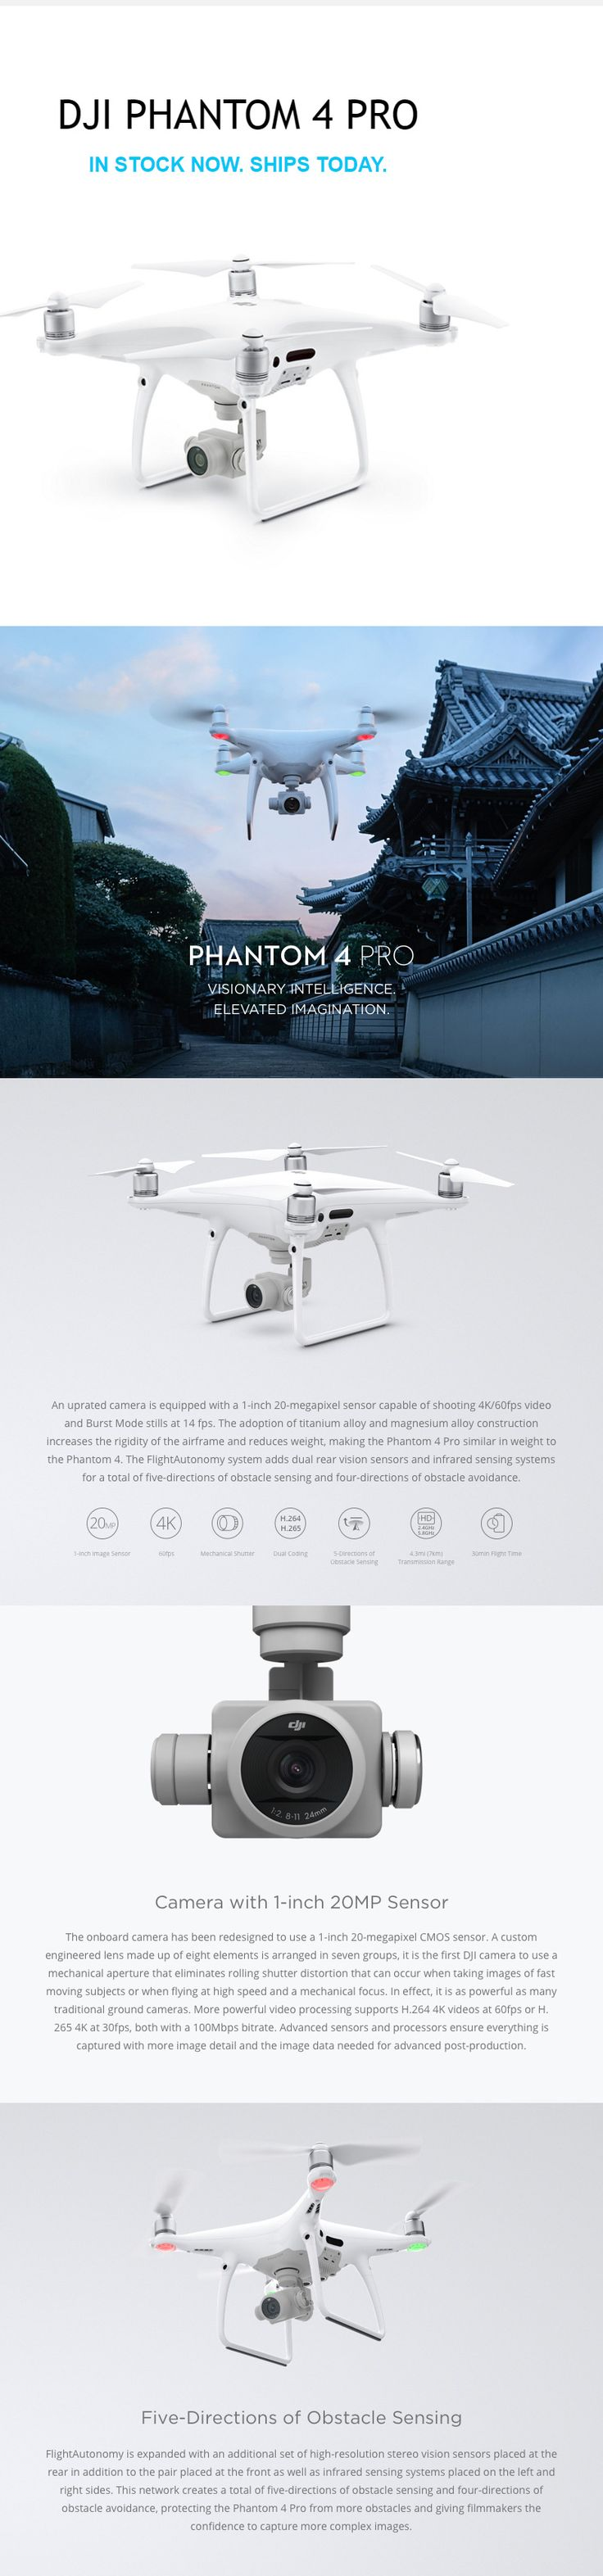 """DJI PHANTOM 4 PRO DRONE with Gimbal Camera with 1"""" CMOS Sensor. 4K 60fps.   quadcopter   drone with camera   drone   drones for sale   best drones with camera   gopro drone   drone camera   best drones   camera drone   personal drone   drones on sale   new drone  """